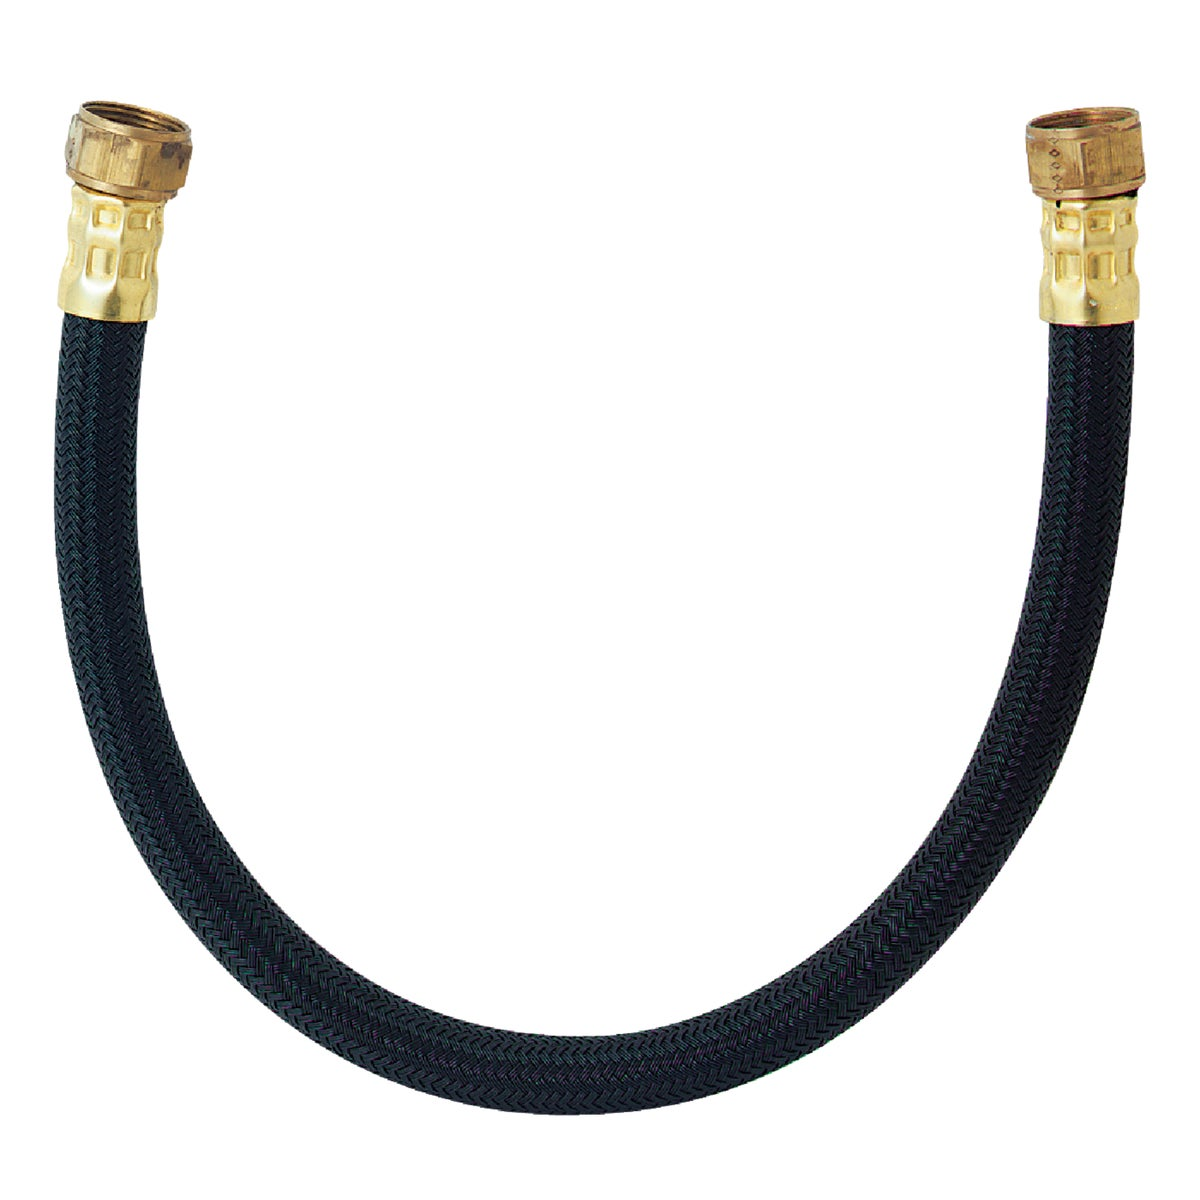 "24"" WATER CONNECTOR - BWB0-24 by Brass Craft"